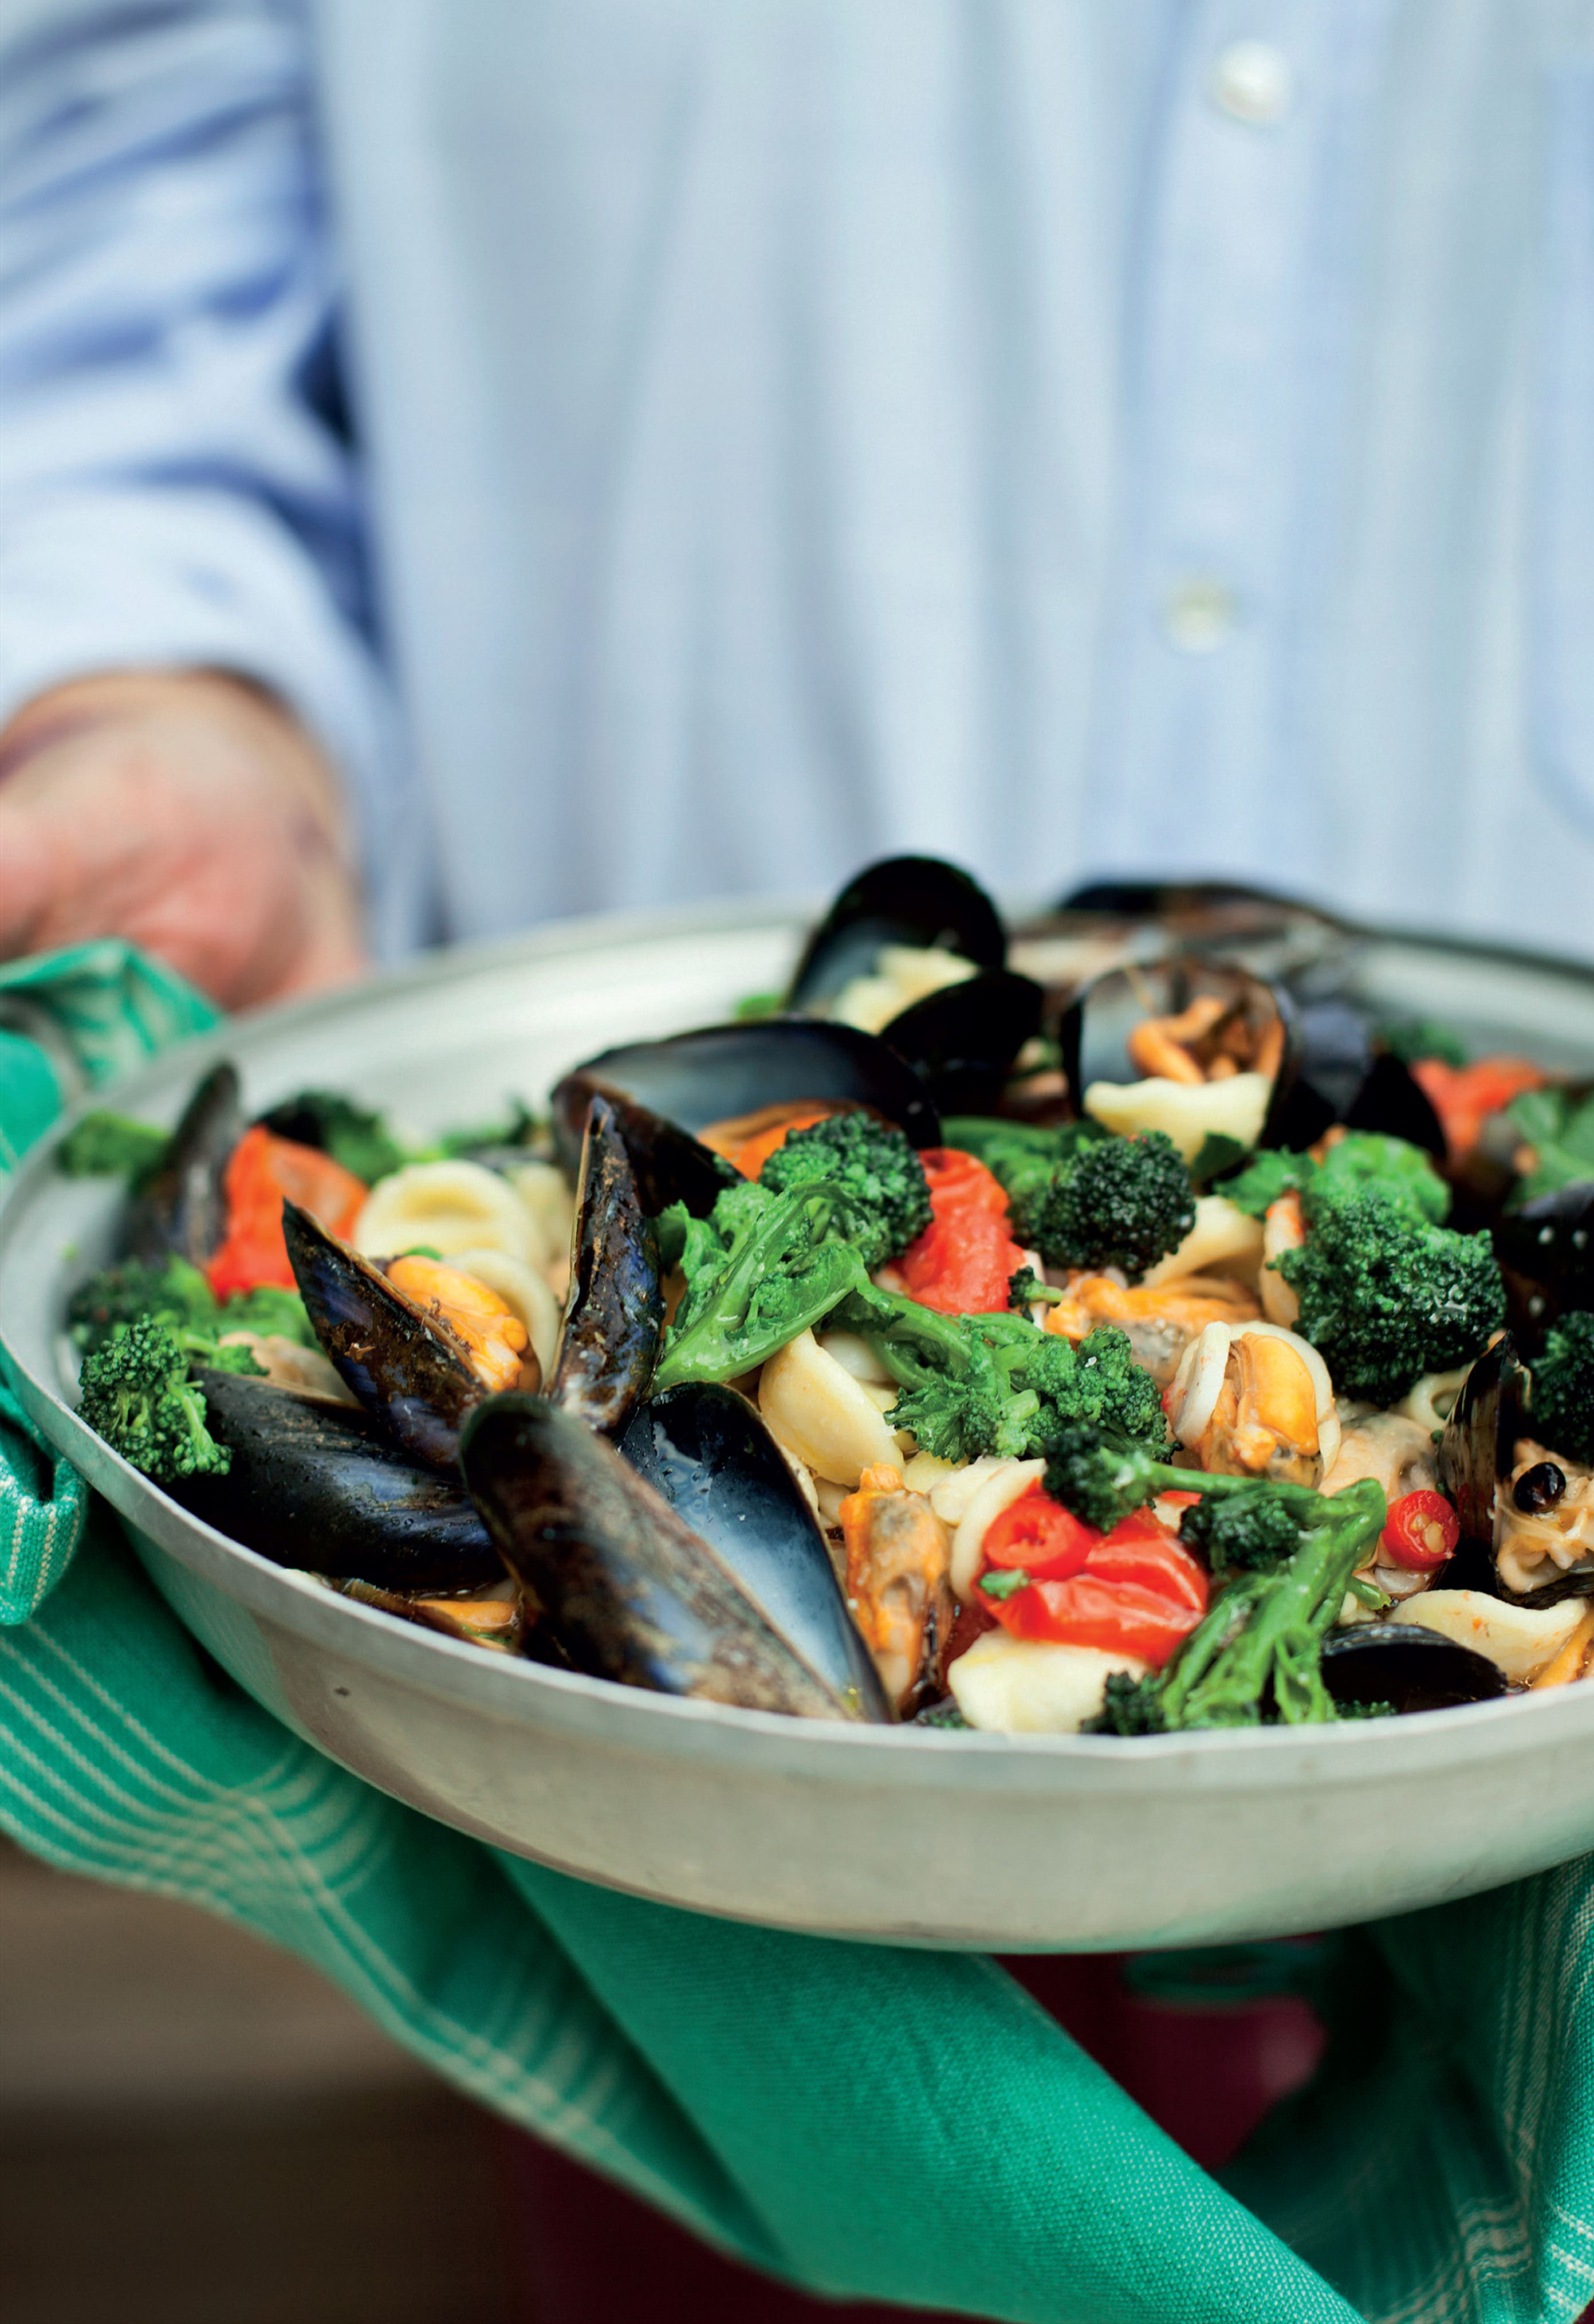 Ear-shaped pasta with broccoli and mussels